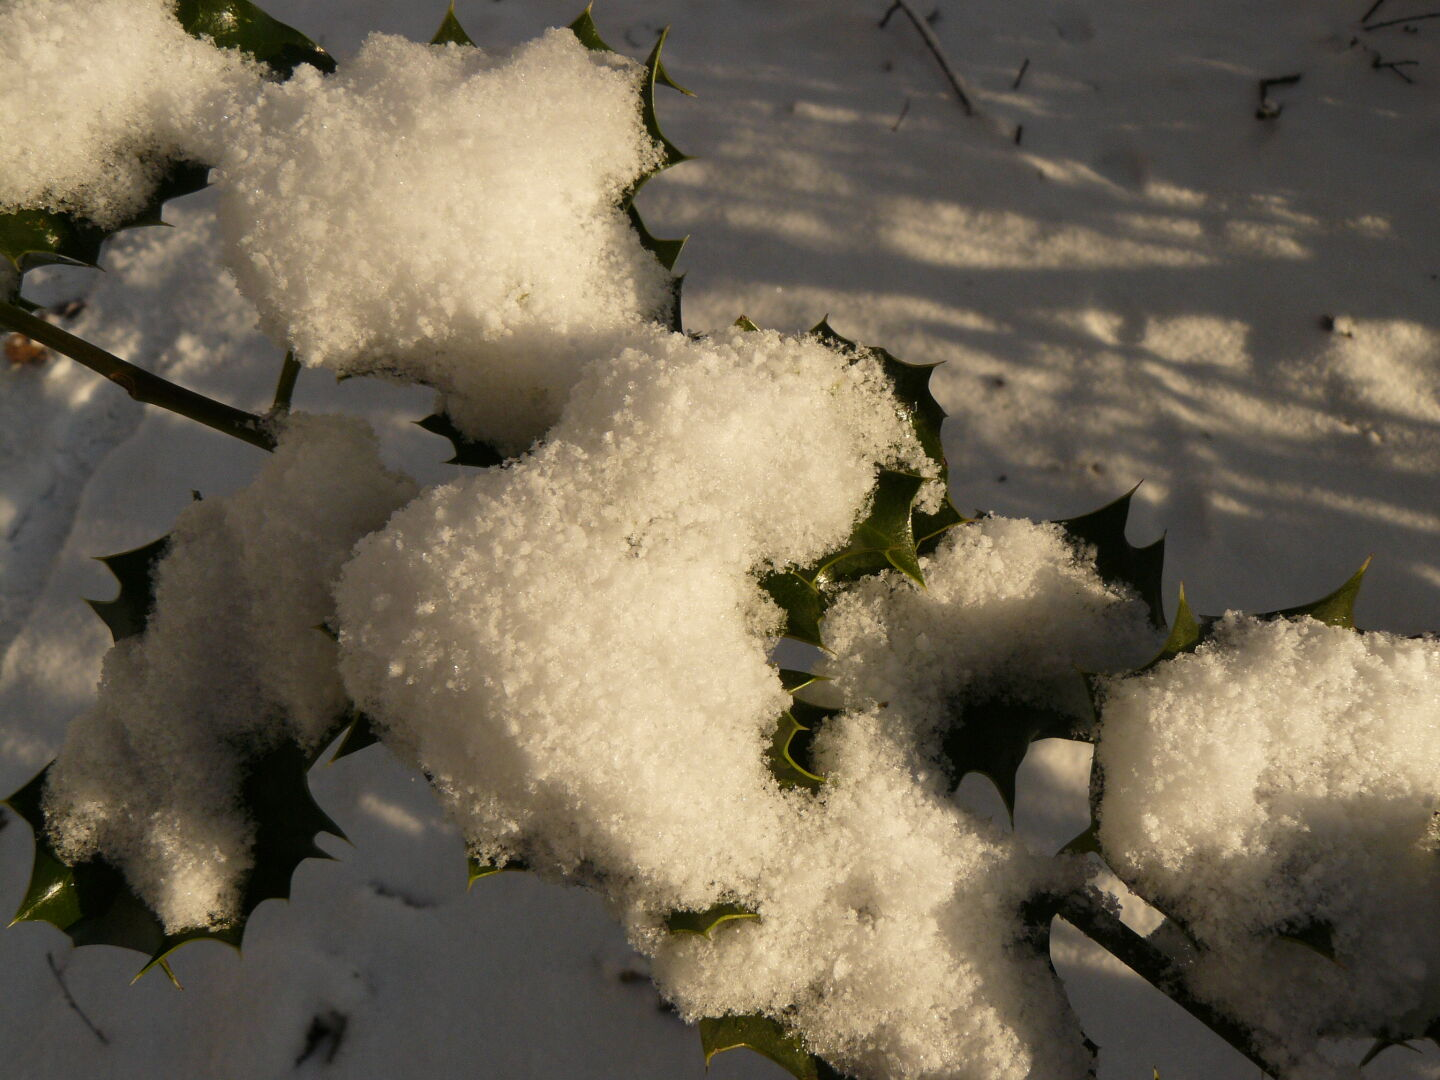 Snow on the leaves of an ilex.